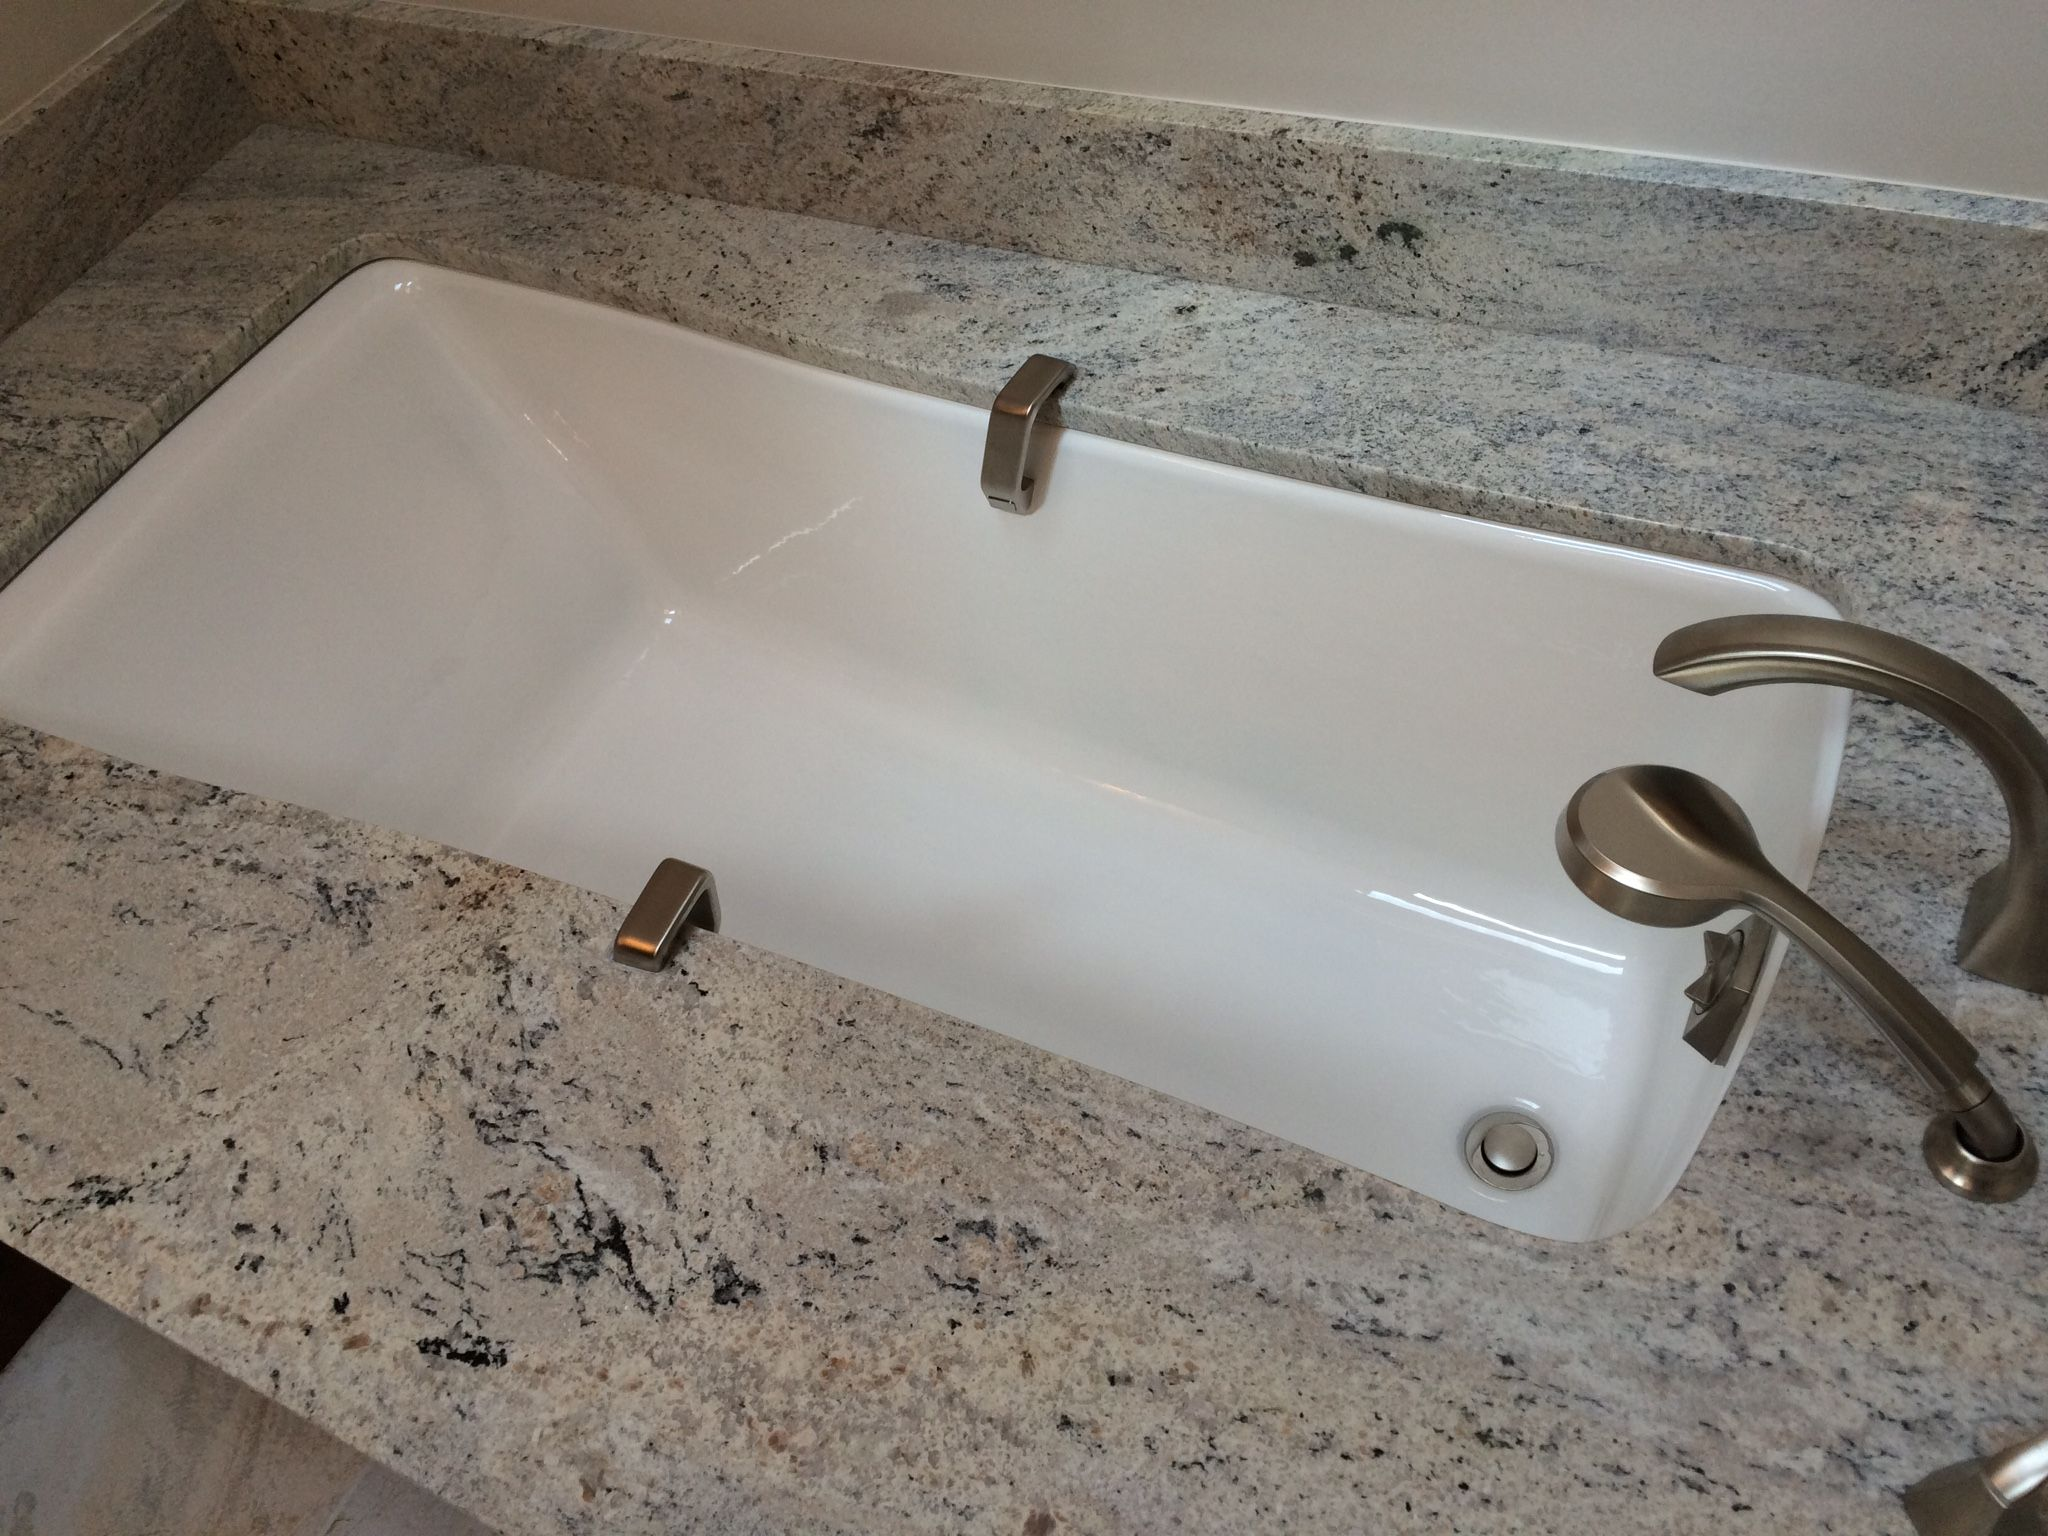 Kohler Maestro Undermount Tub with Celo De Marfil Granite Sagent